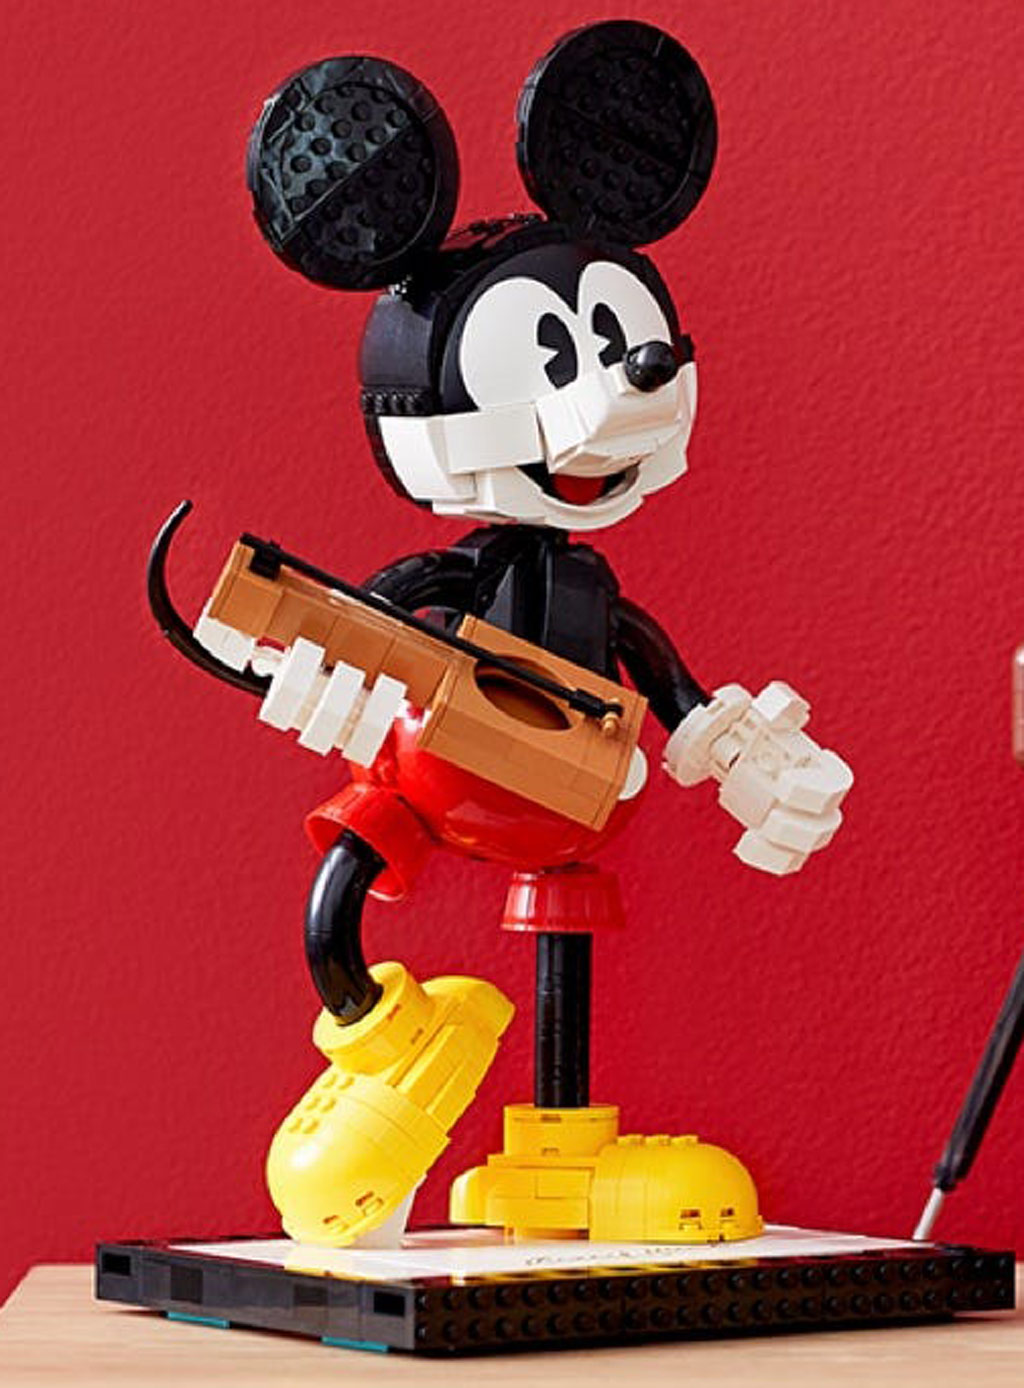 lego-disney-43179-mickey-mouse-and-minnie-mouse-buildable-characters-micky-maus-2020 zusammengebaut.com